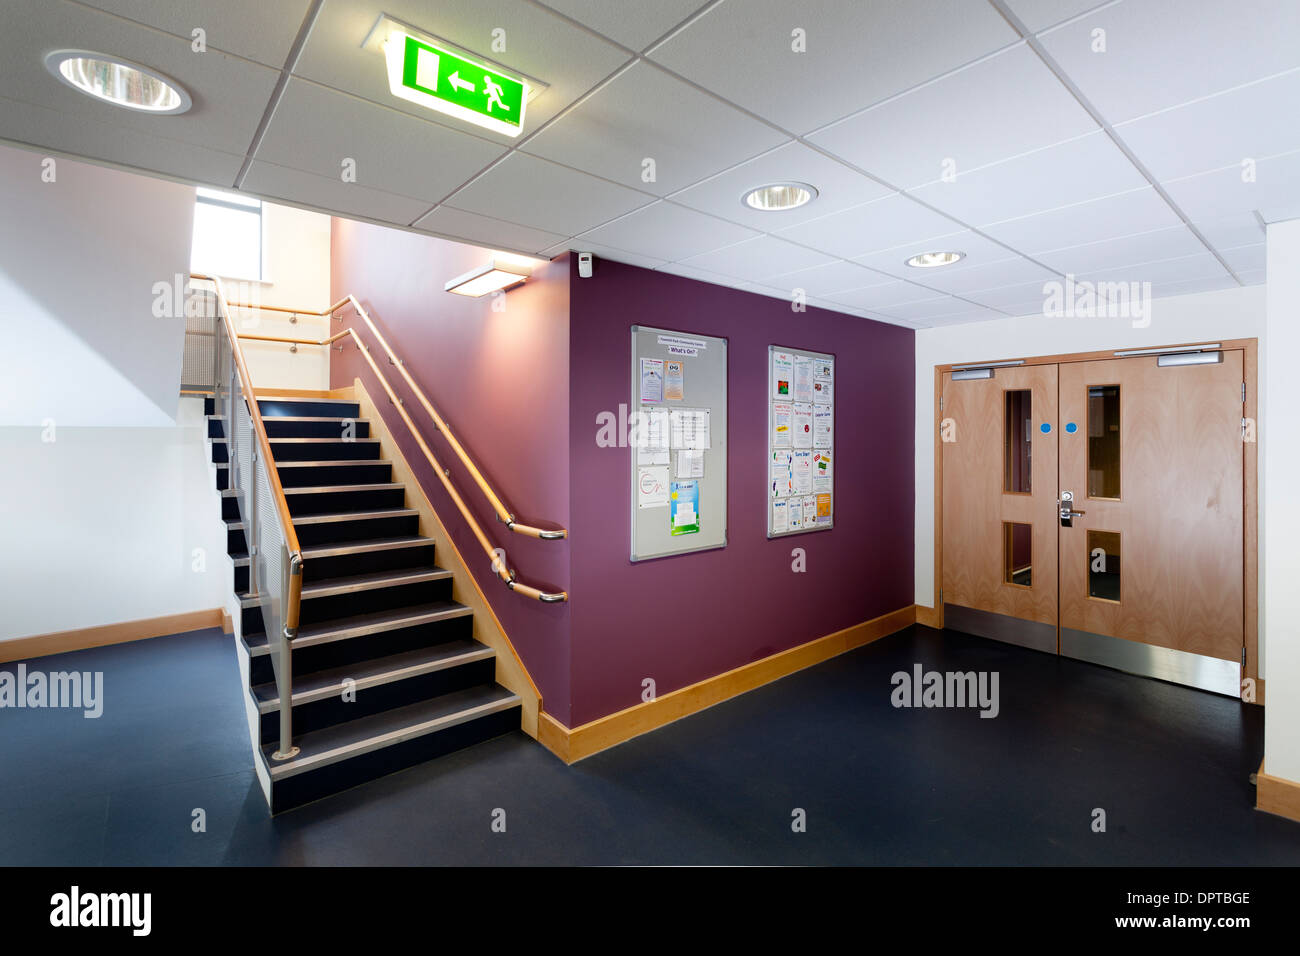 Modern Office Stairs In Corridor With Emergency Exit